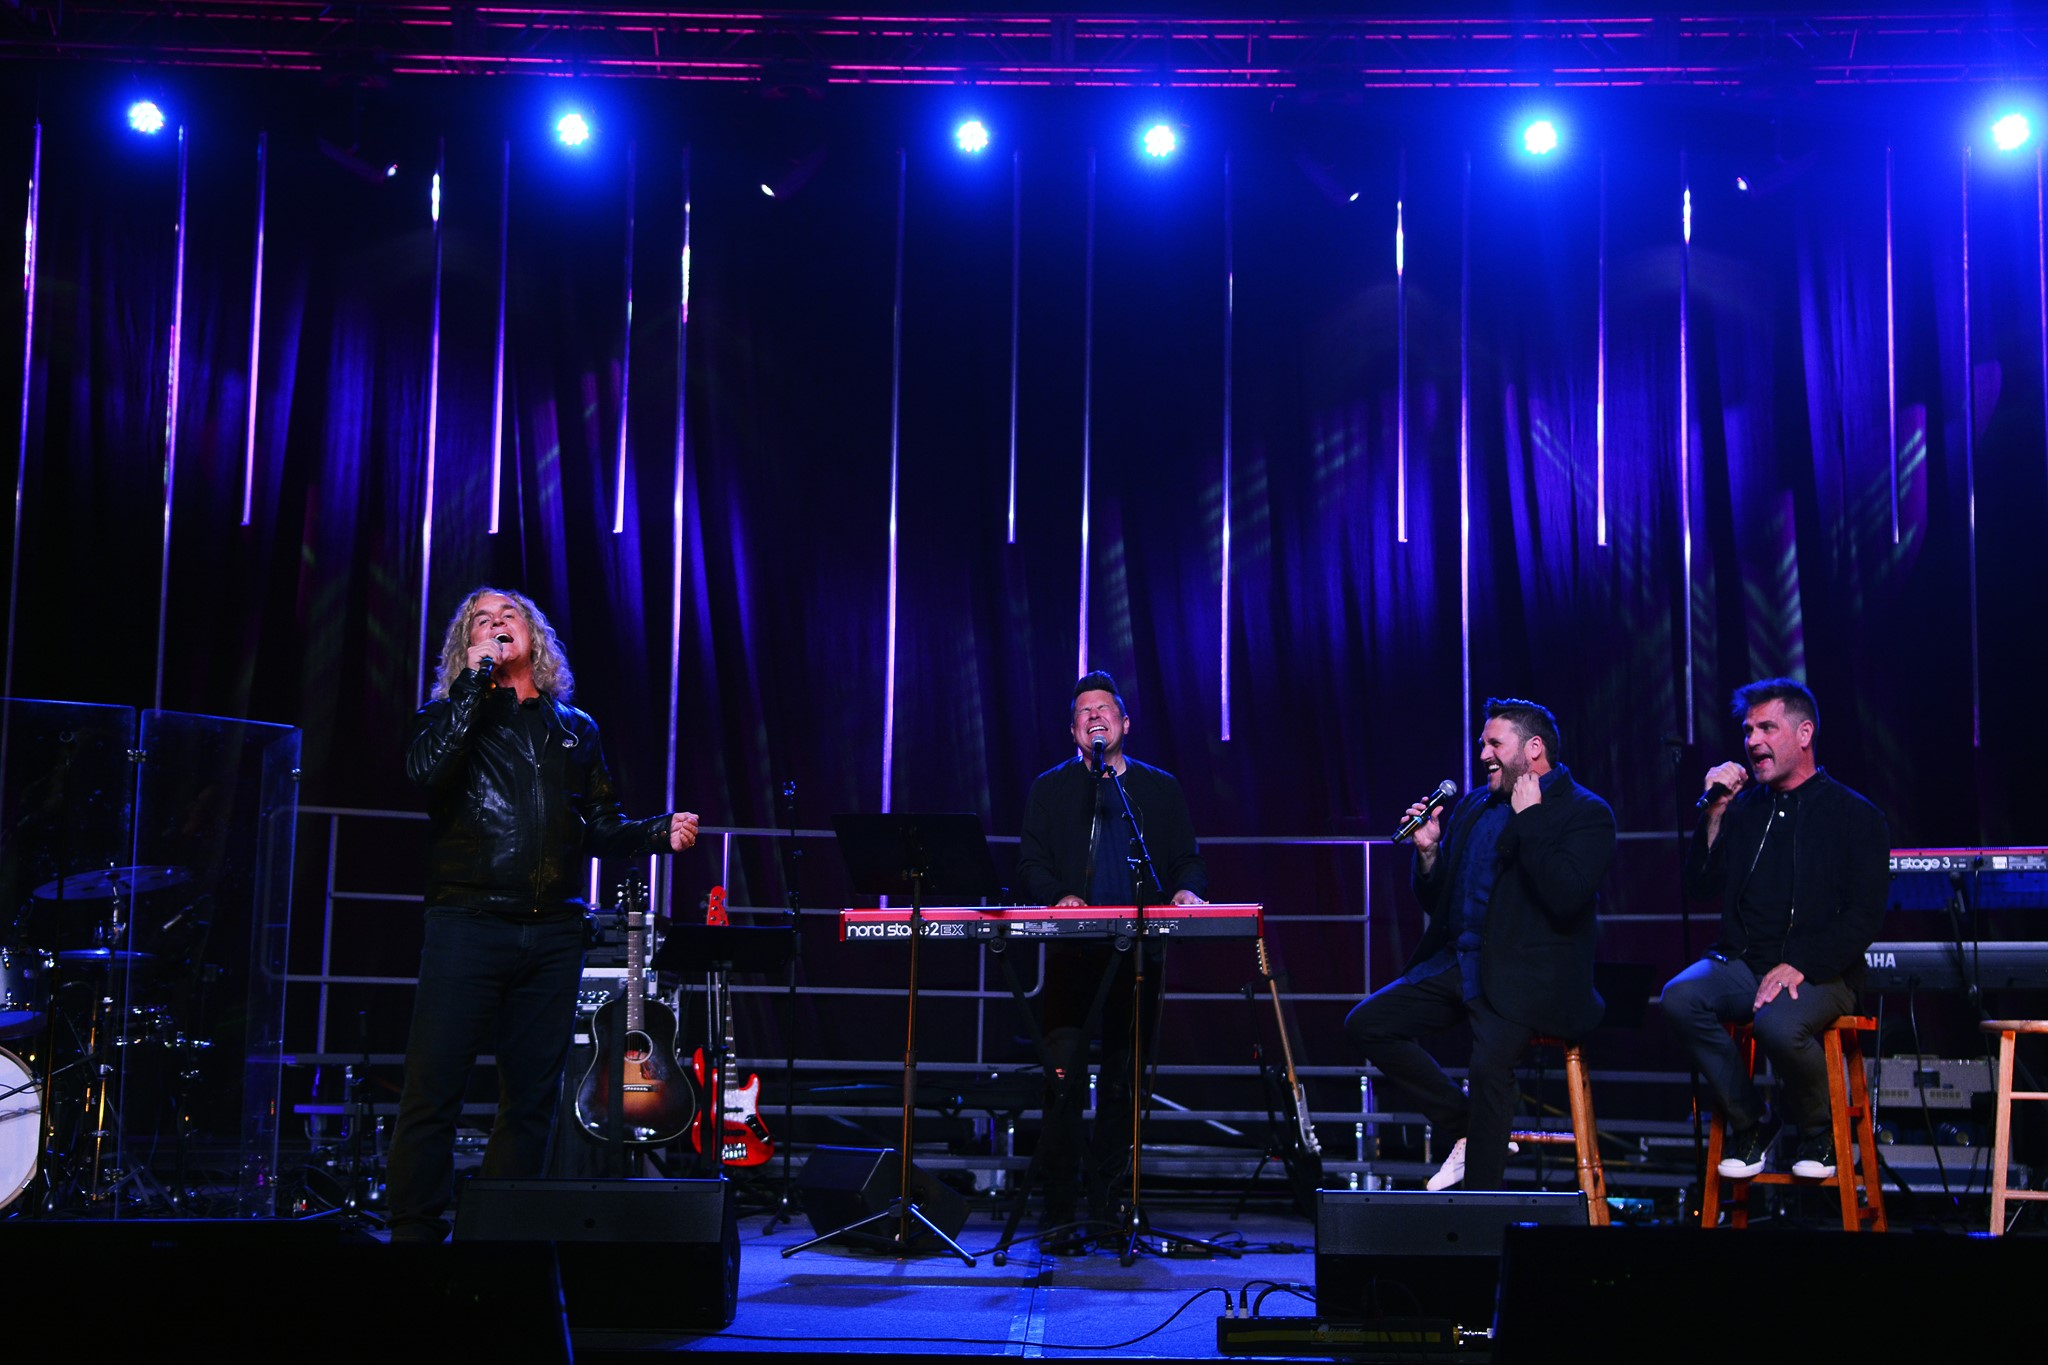 Jason Scheff, formerly with the band Chicago, makes a special appearance during Avalon's performance at LifeWay's WorshipLife Conference in Gatlinburg, TN.